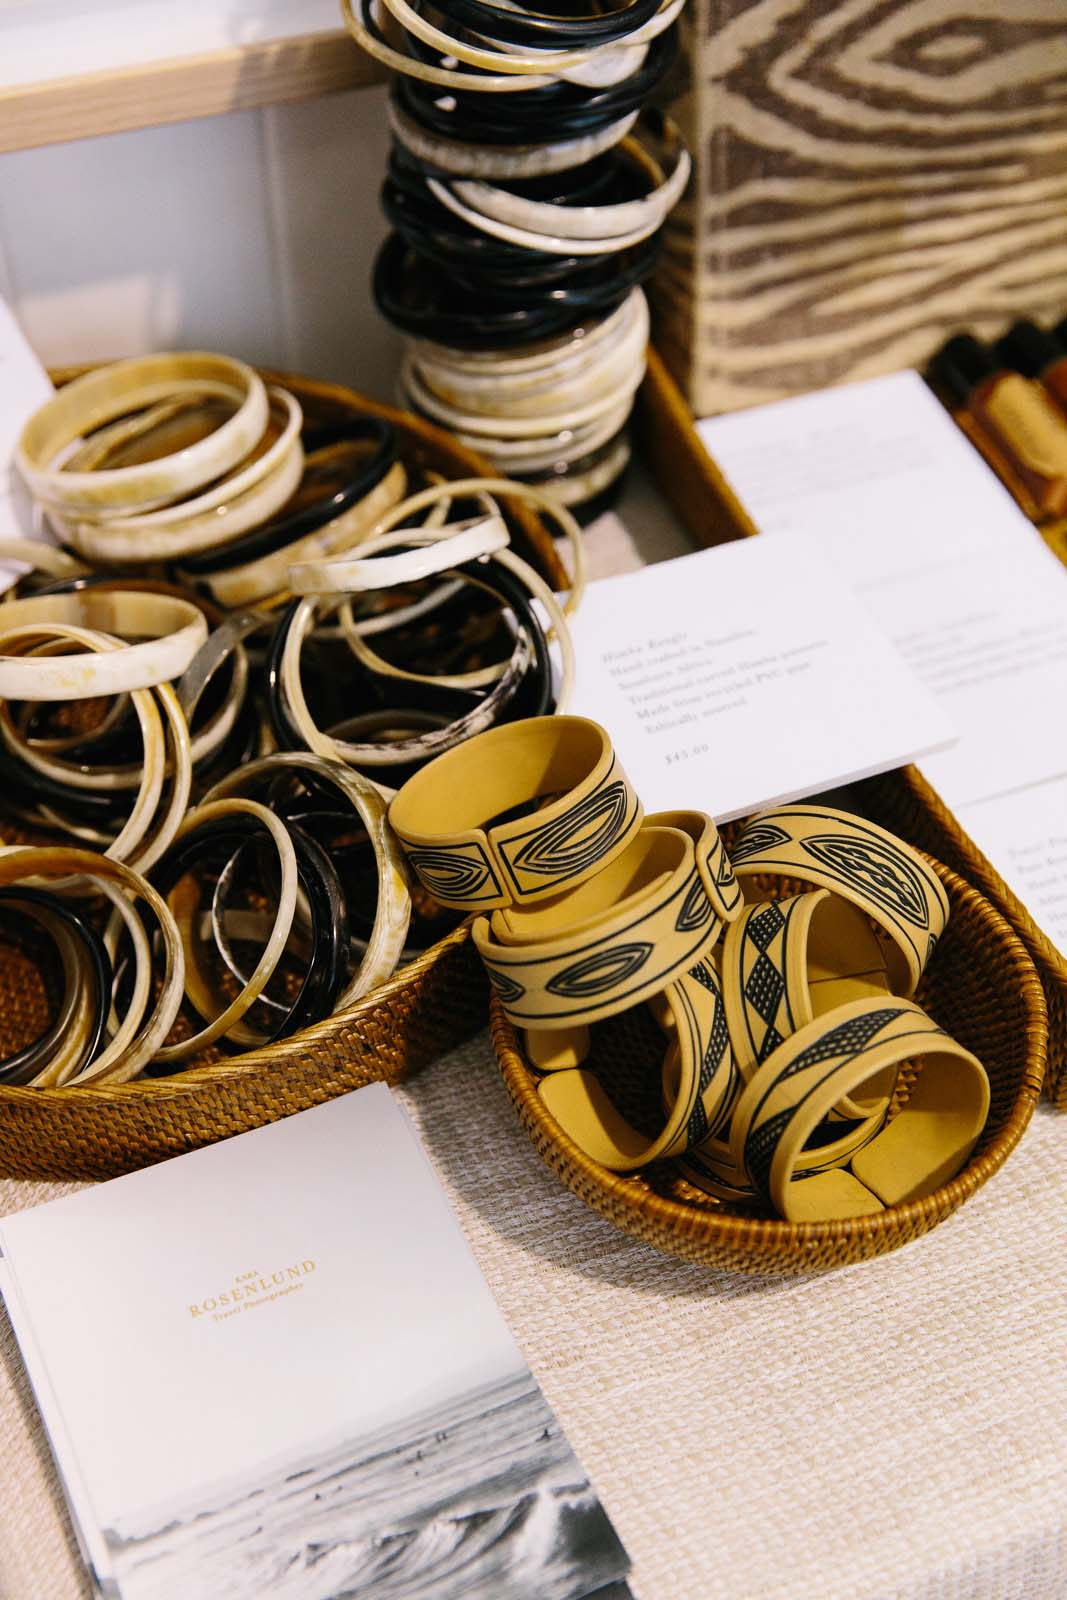 Bangles by Kara Rosenlund at Finders Keepers Market